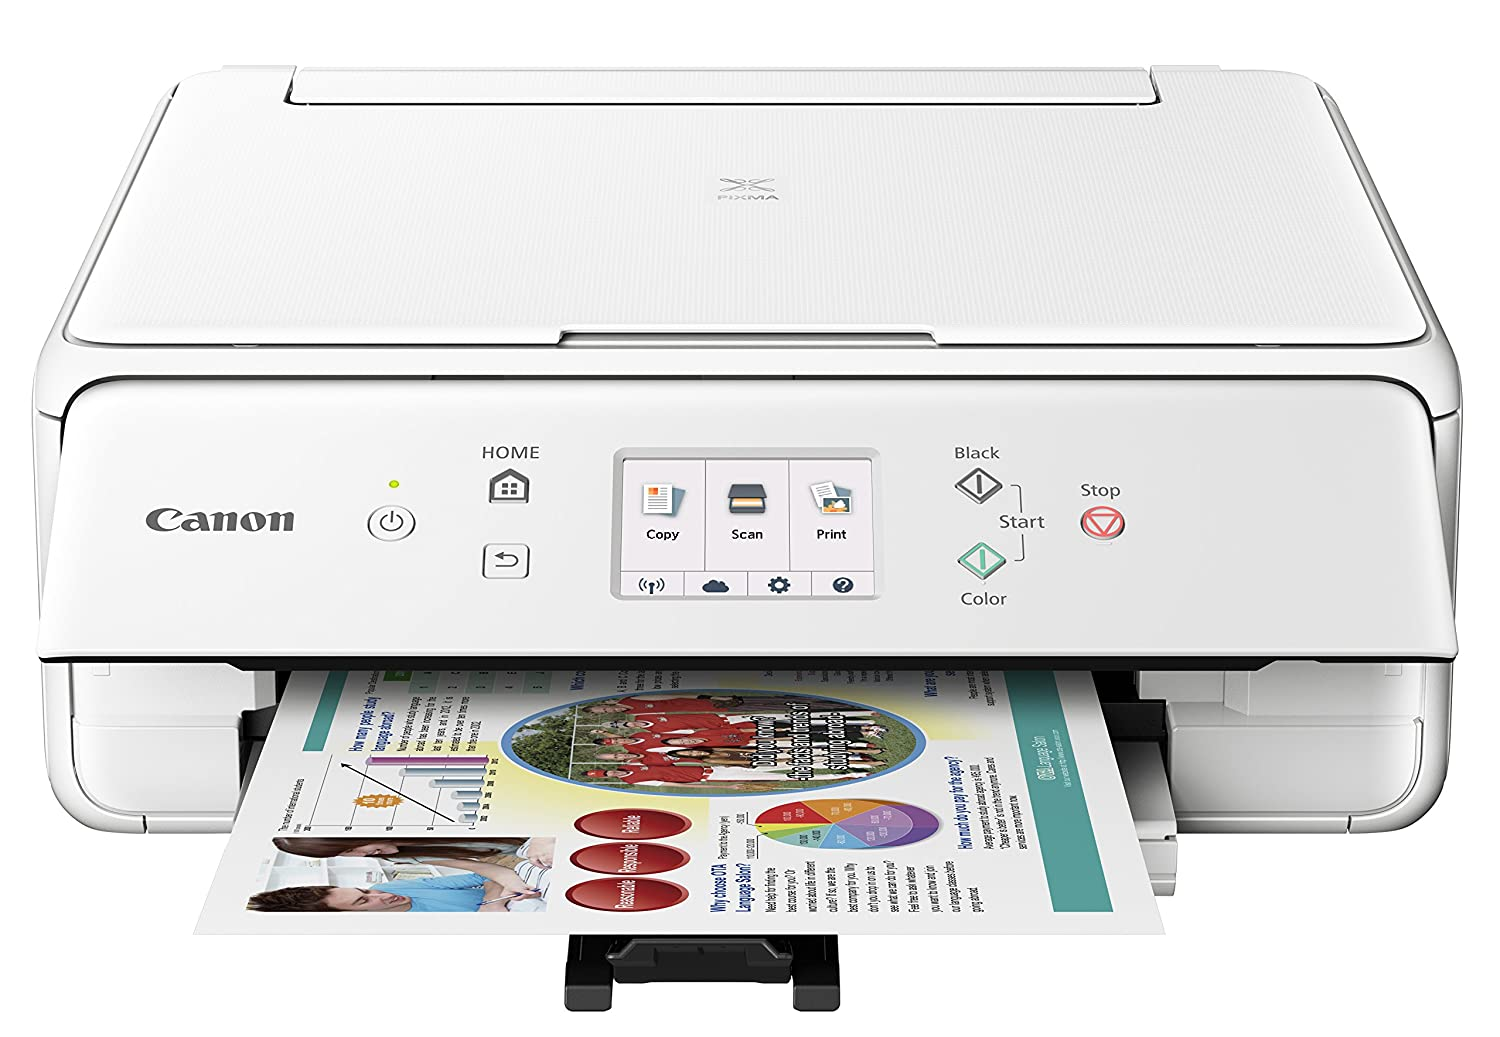 Canon Compact TS6020 Wireless Home Inkjet All-in-One Printer, Copier & Scanner, Mobile Printing, Auto Duplex and Business Card Printing, White Canon USA Inc. TS6020 WH